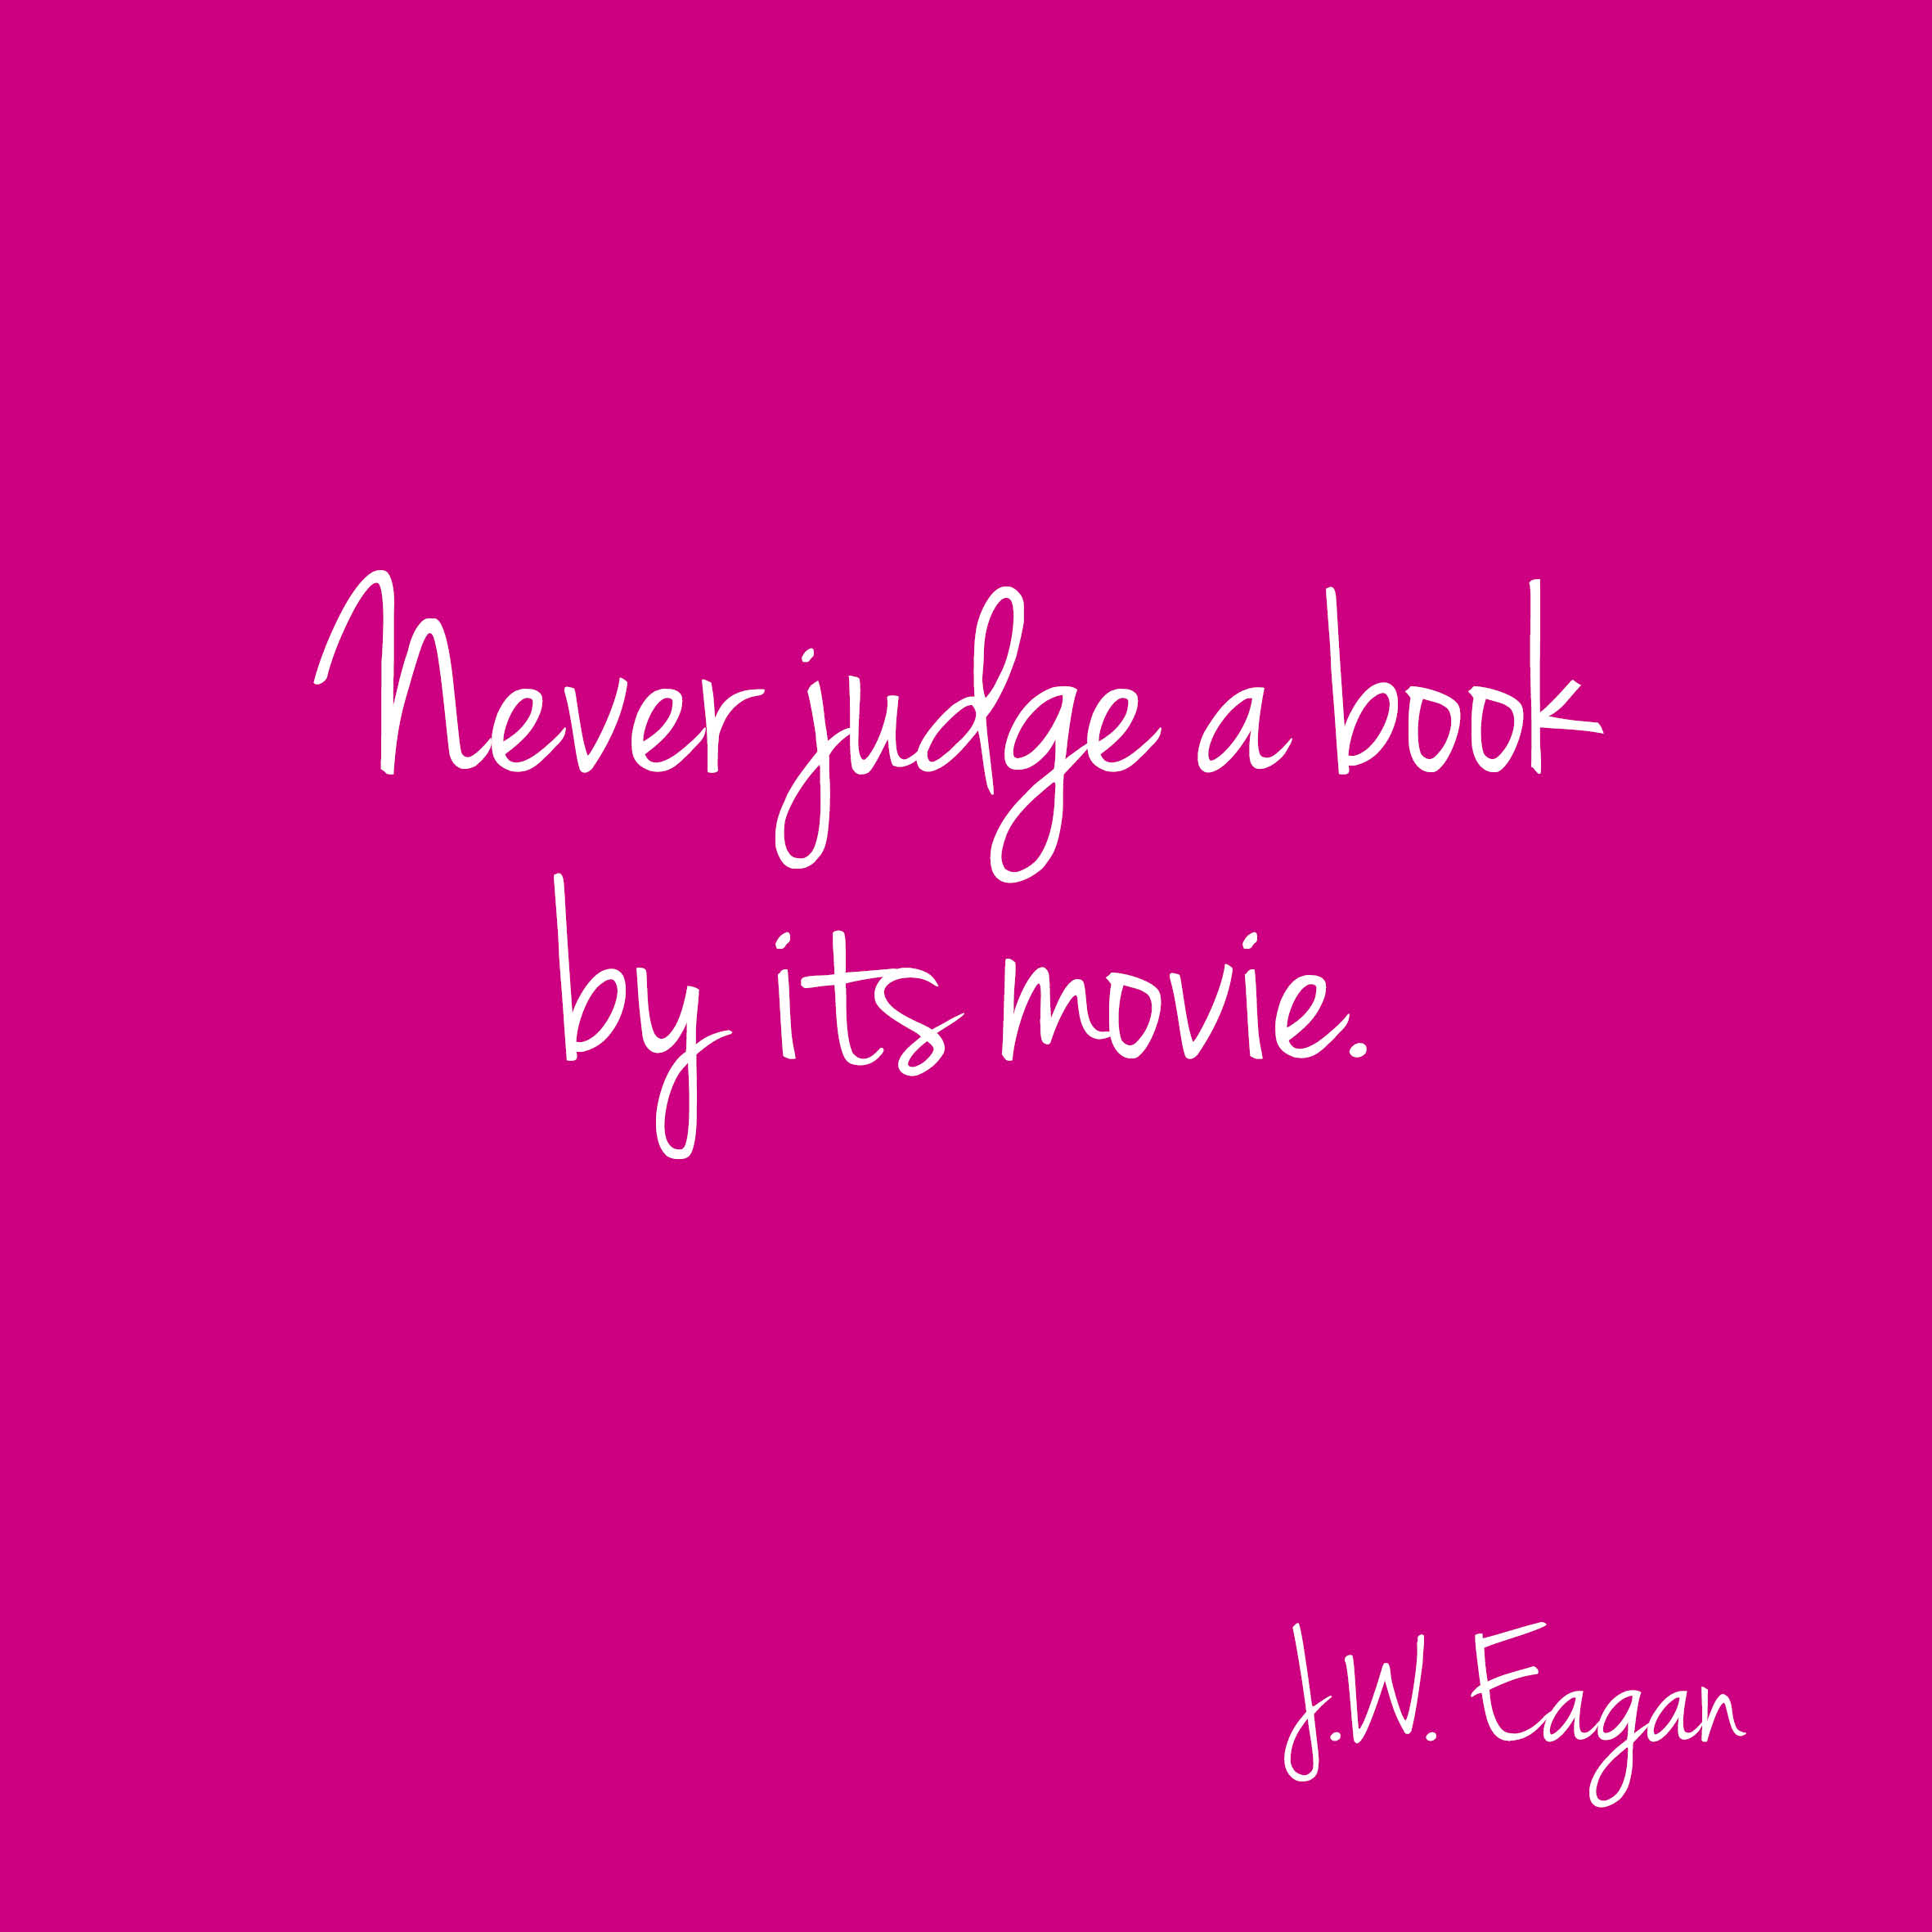 Never judge a book by its movie. J.W. Egan